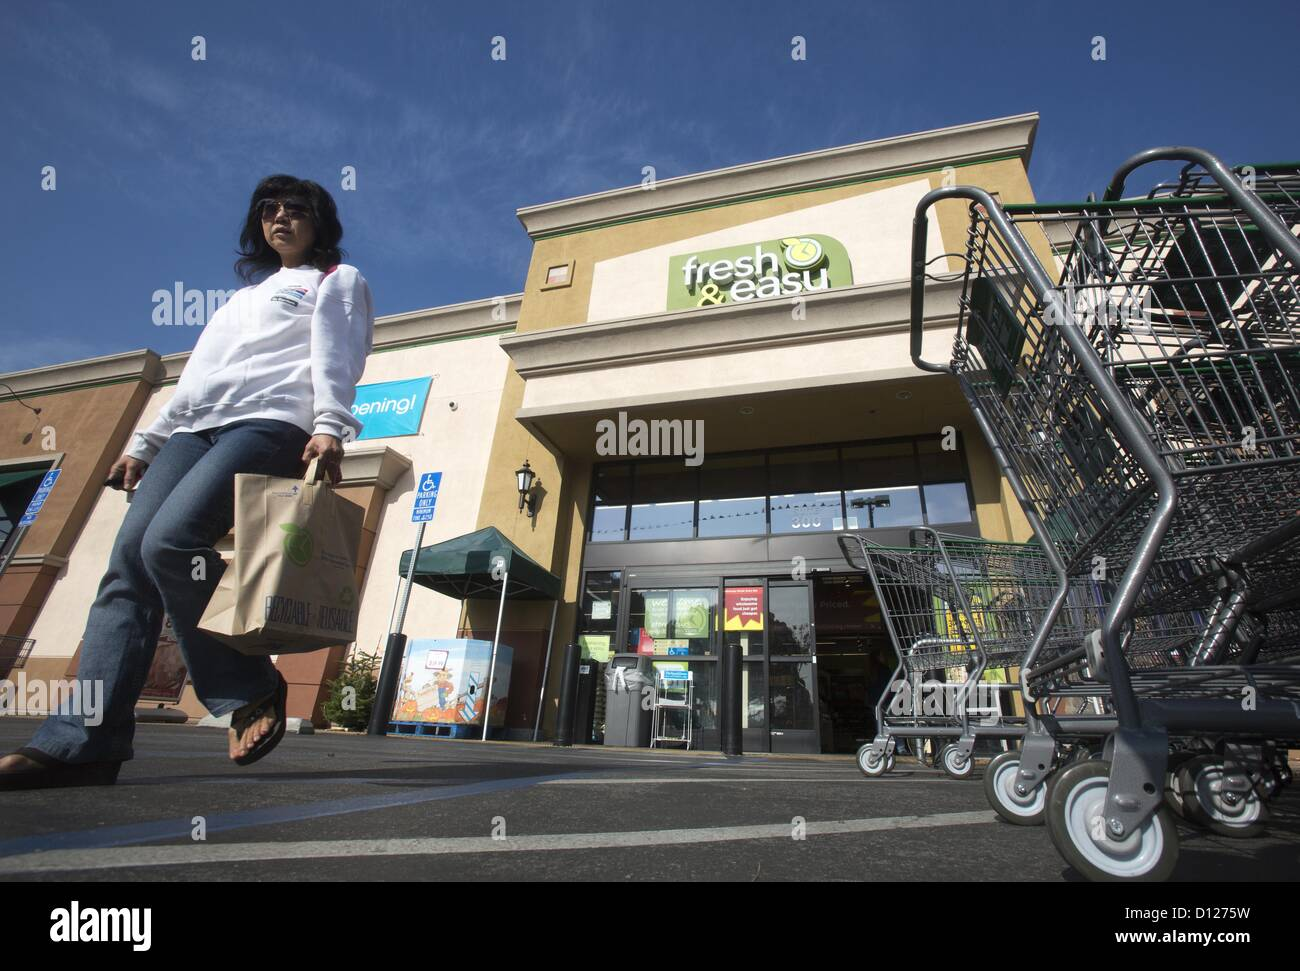 Dec. 5, 2012 - Los Angeles, California (CA, United States - A customer leaves a Fresh & Easy supermarket on - Stock Image